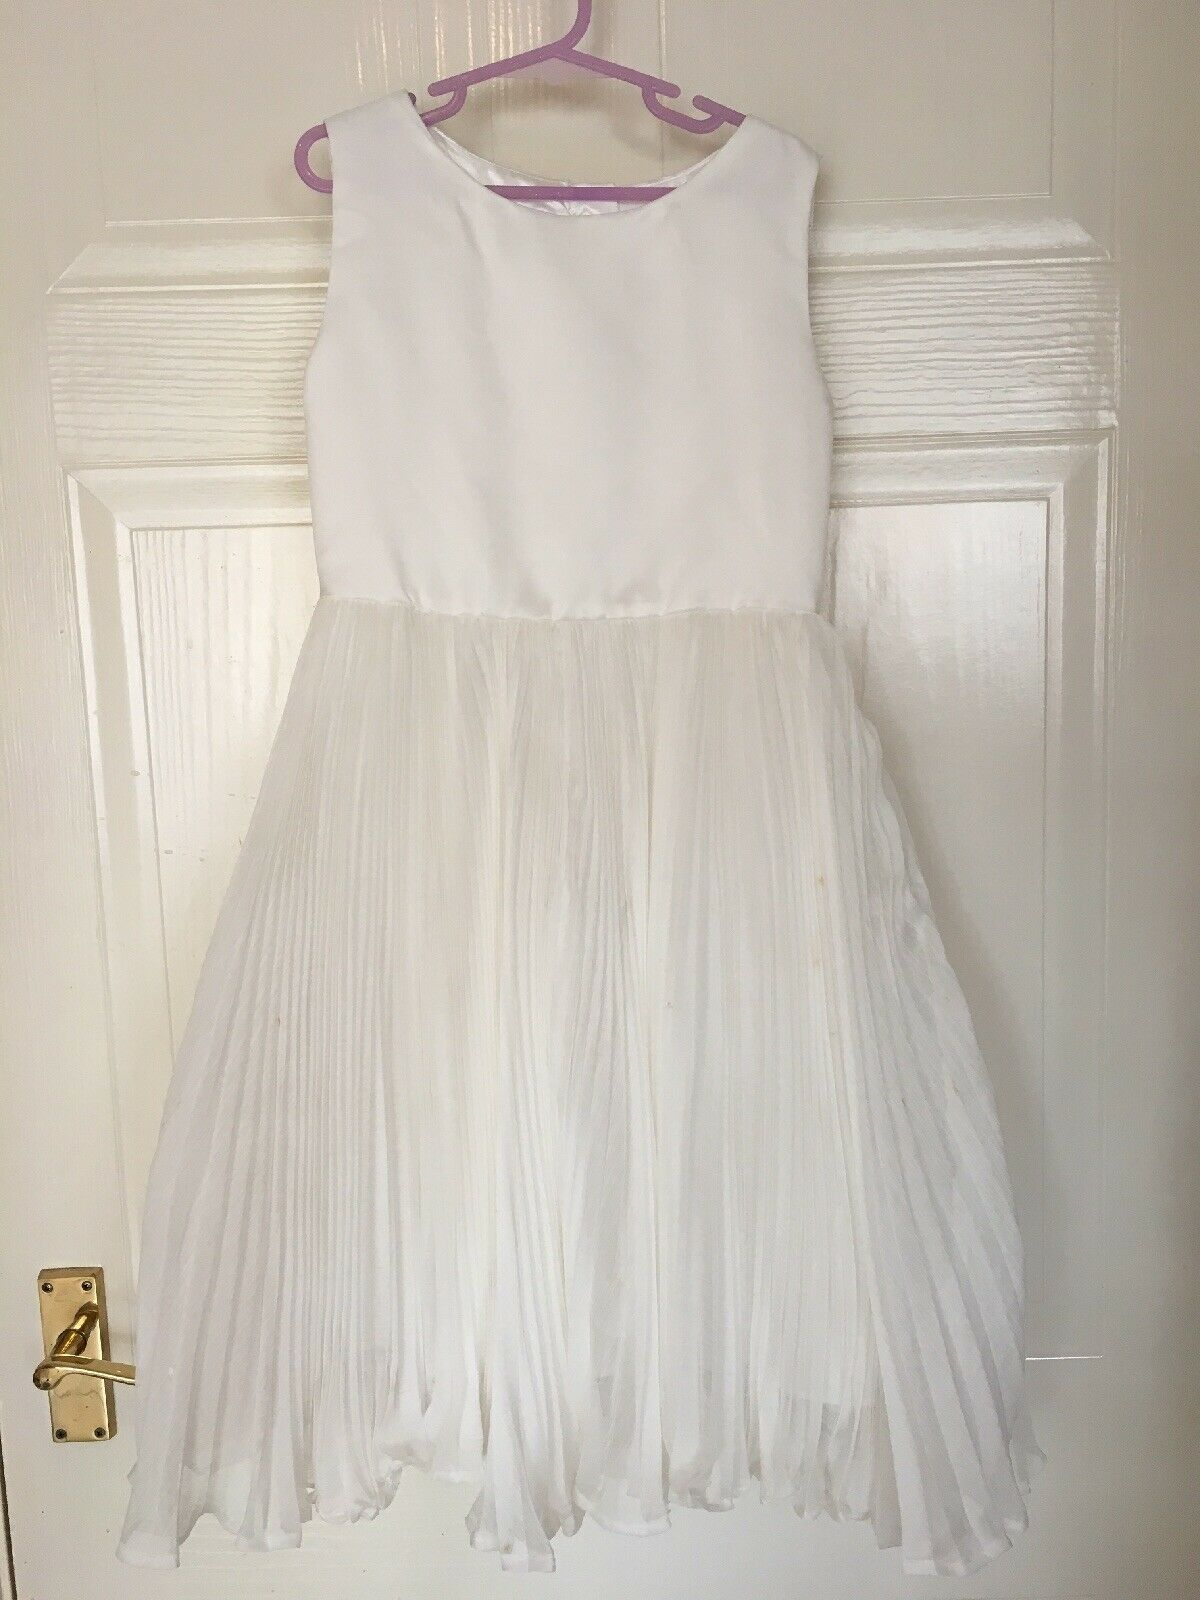 Monsoon Ivory Bridesmaid Dress,Age 10,Used Once,Has A Few Marks On